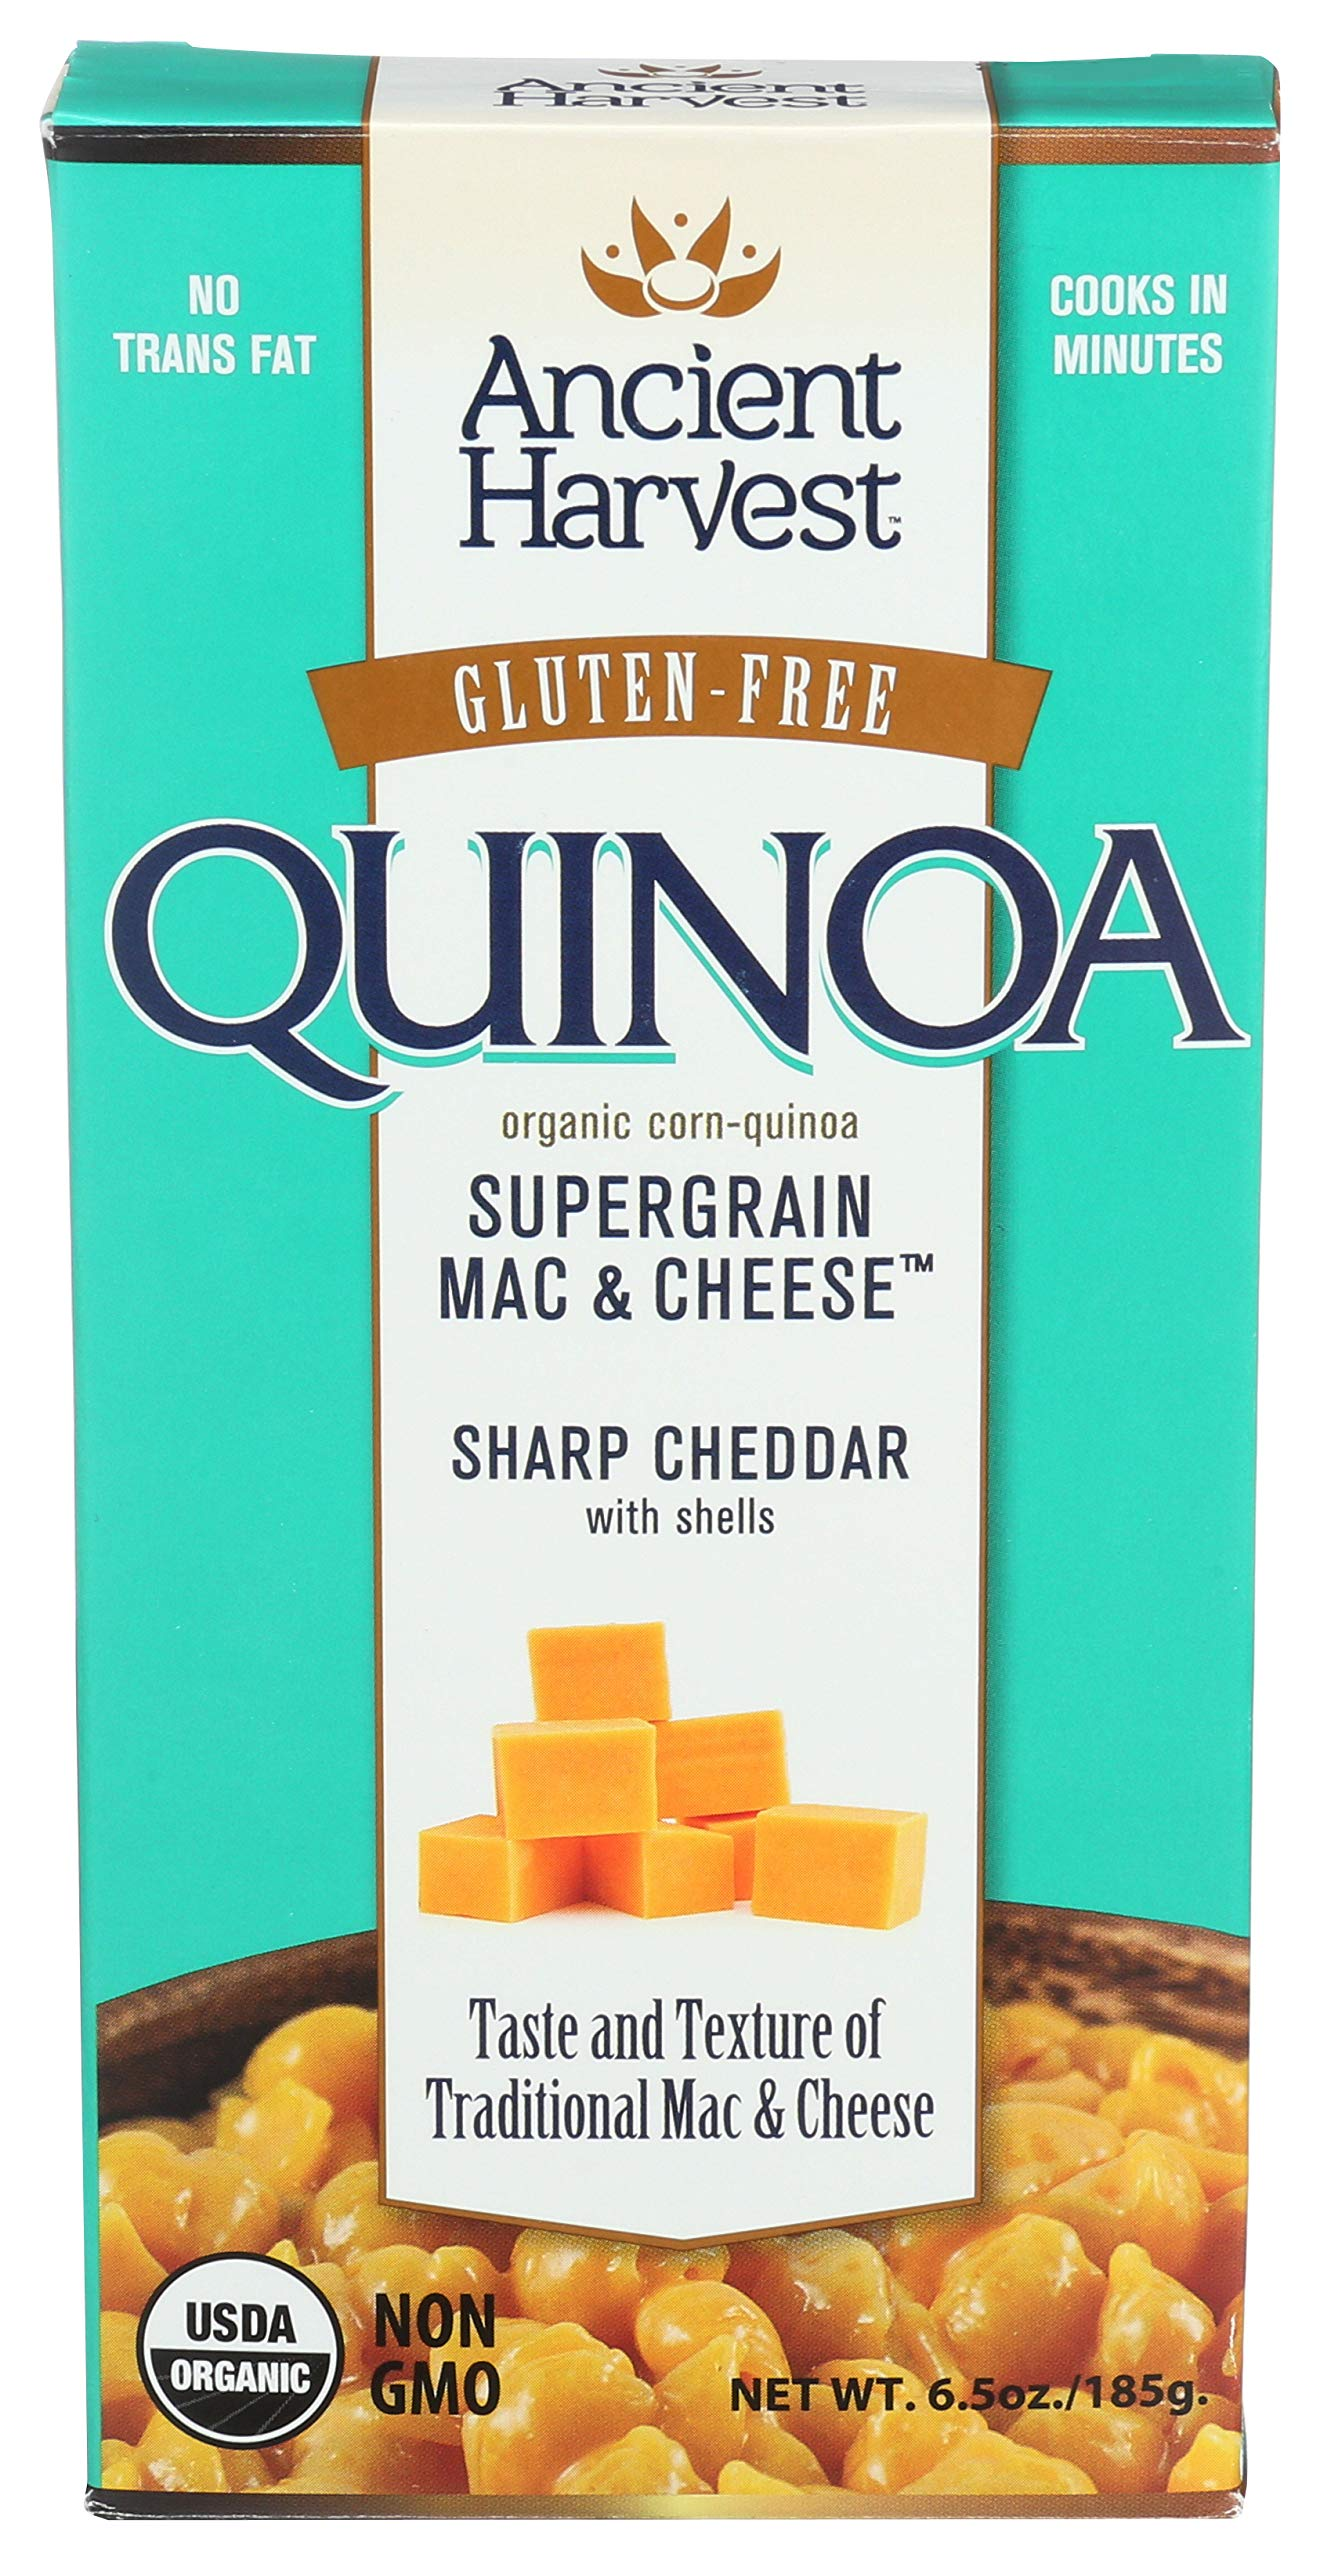 ANCIENT HARVEST Mac & Cheese Gluten Free sharp cheddar, 6 oz by Ancient Harvest